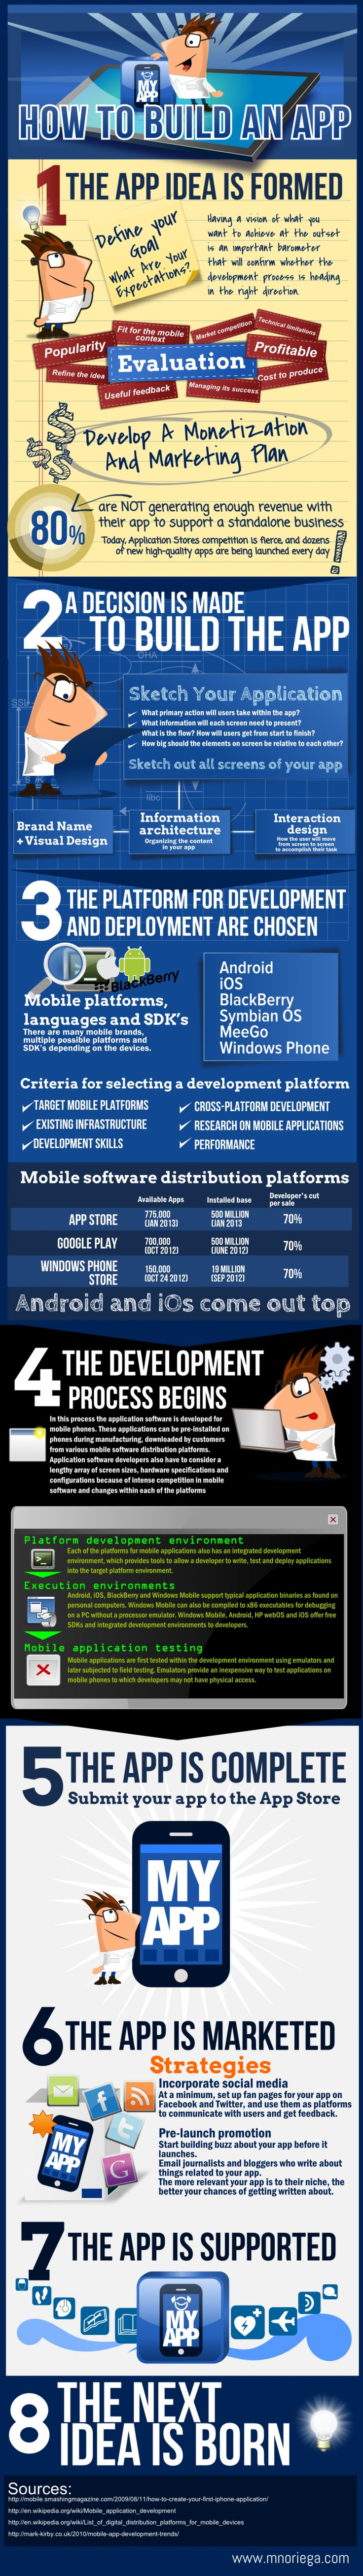 How to build an app. Infographic